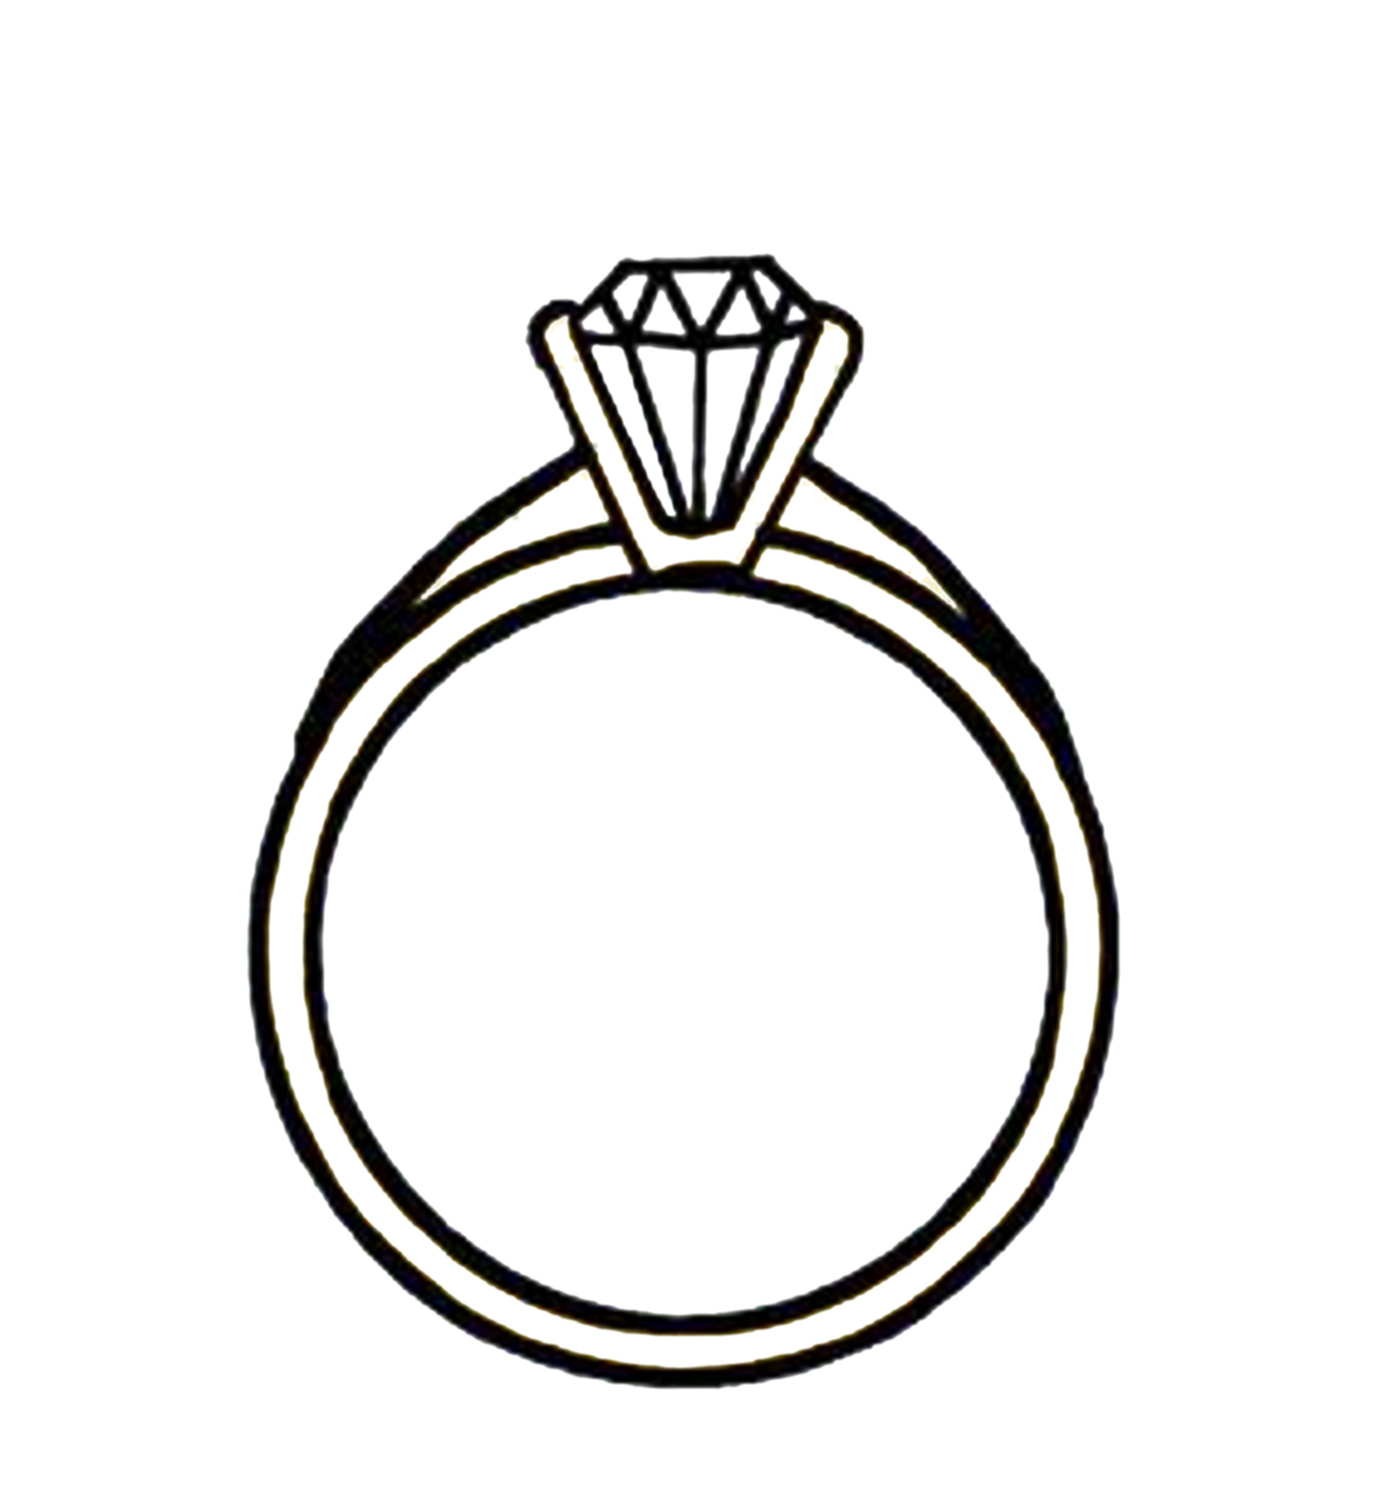 Diamond Ring Clipart Clipart Panda Free -Diamond Ring Clipart Clipart Panda Free Clipart Images-2